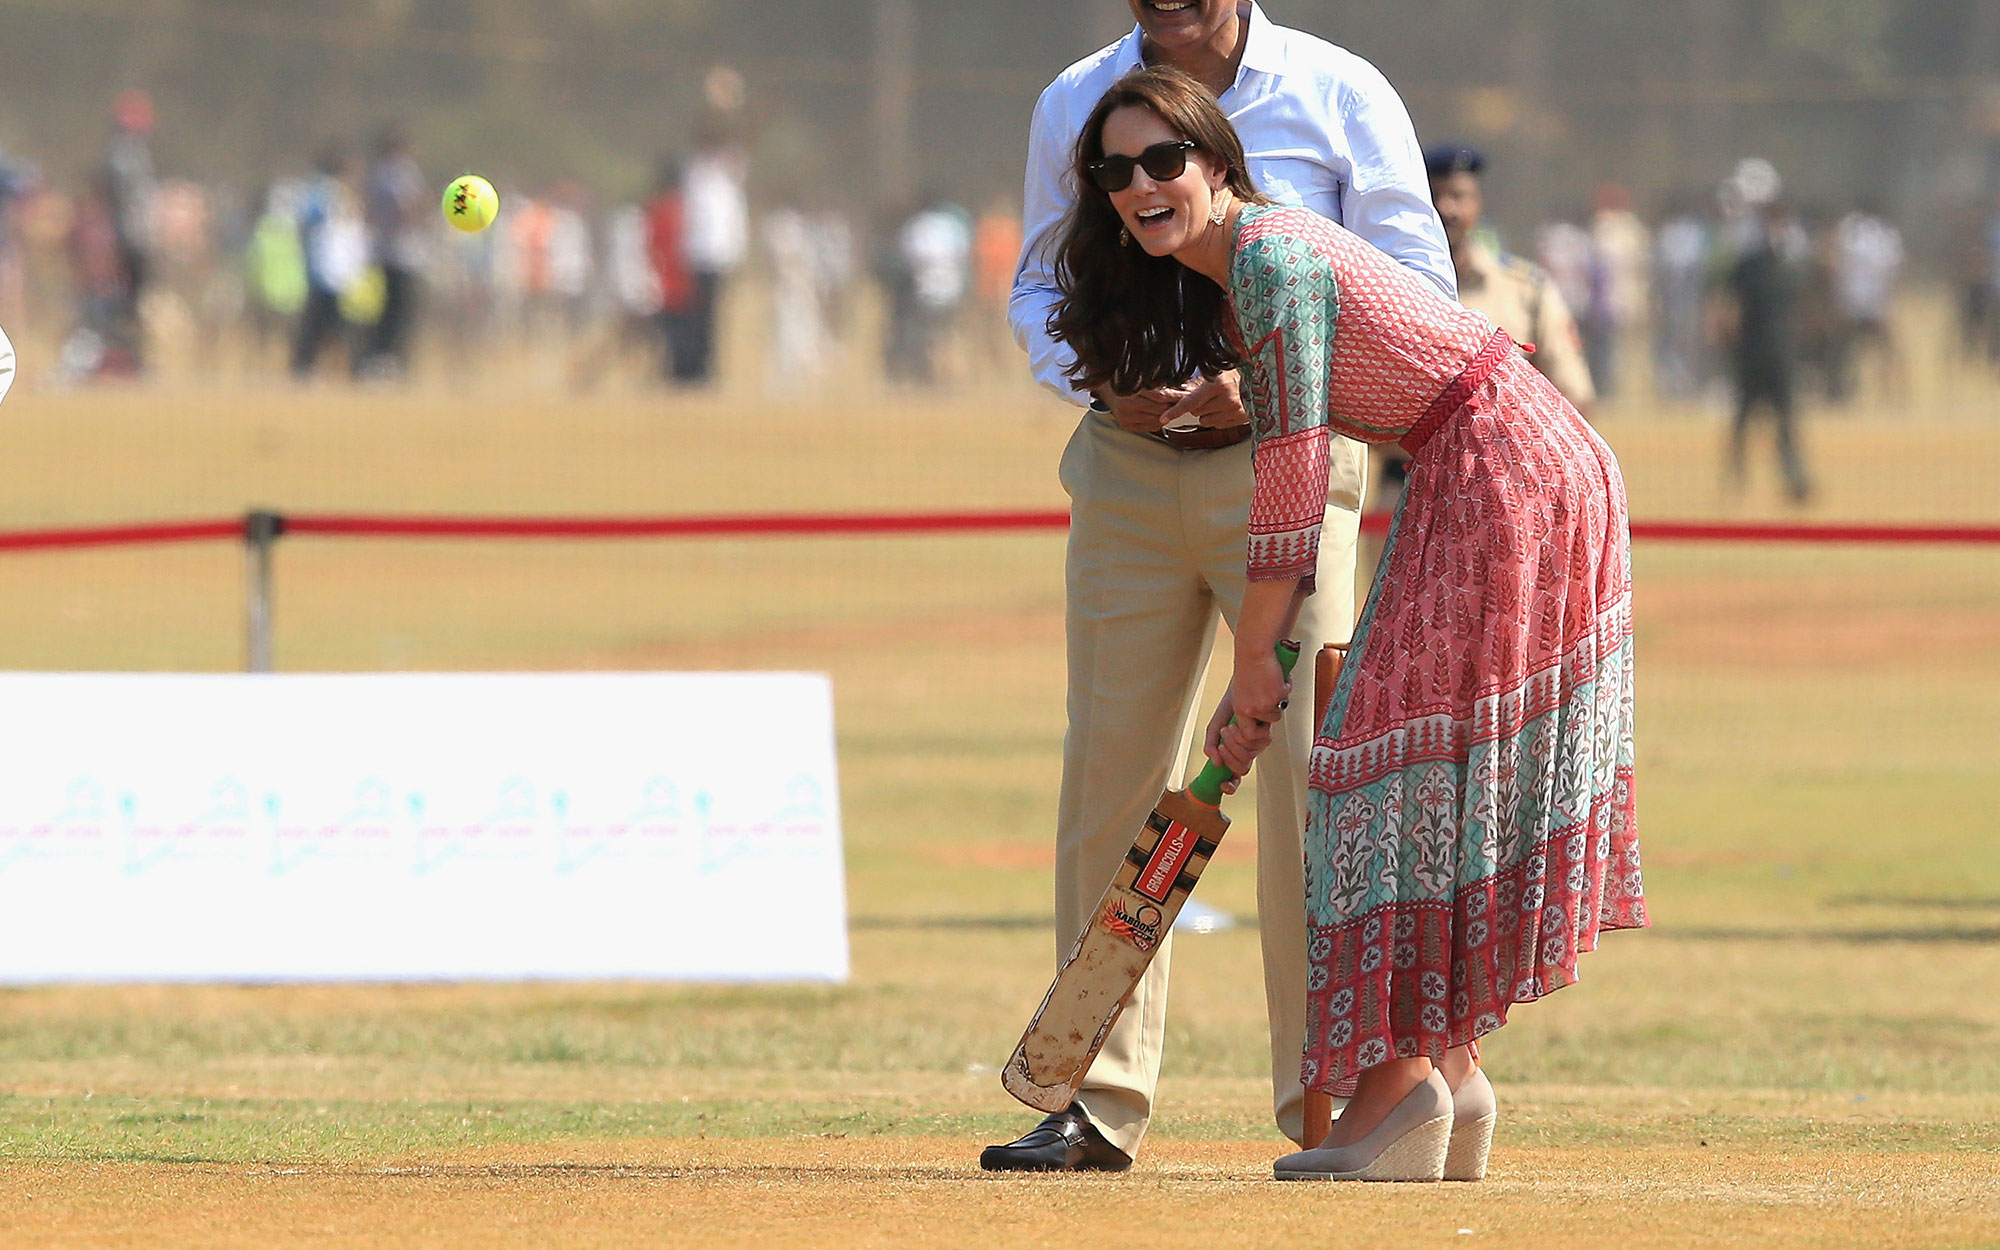 Prince William and Kate Middleton Embark on their Royal Tour of India and Bhutan: Kate Plays a Round of Cricket